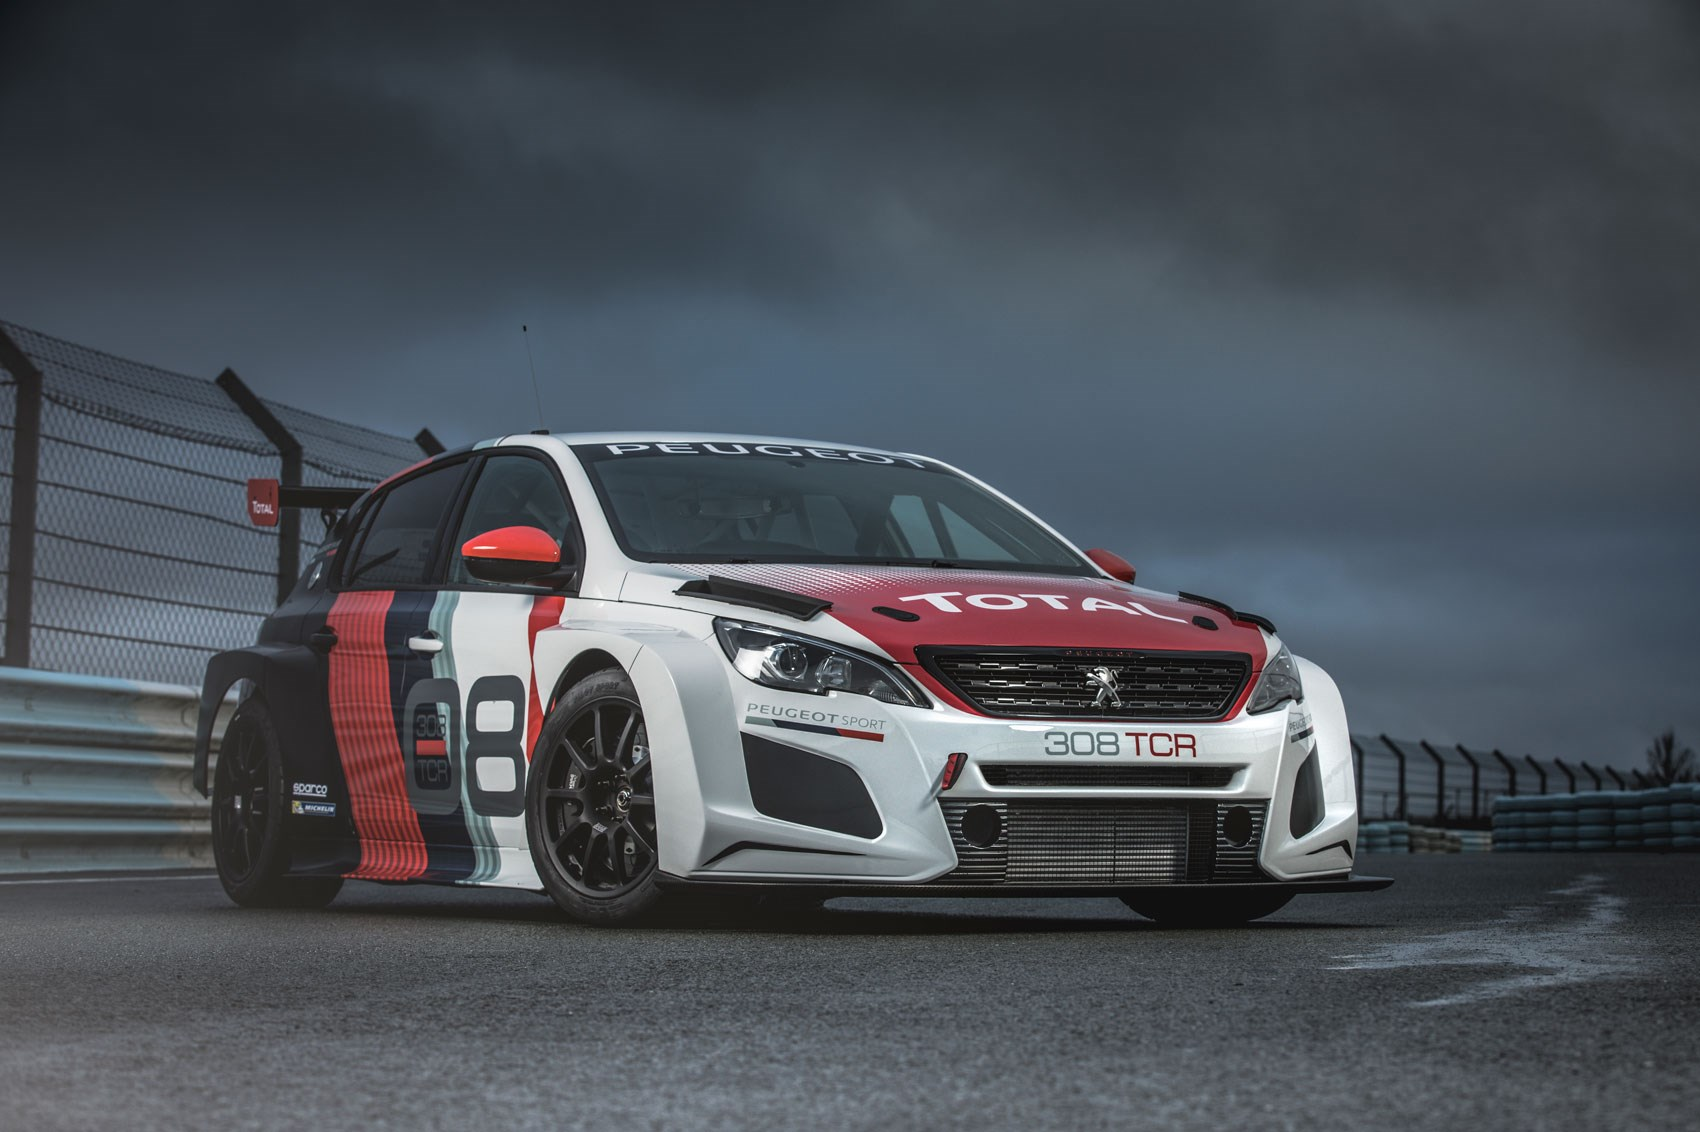 Peugeot First Car Peugeot 308tcr 2018 Race Car Pics Specs And Price Car